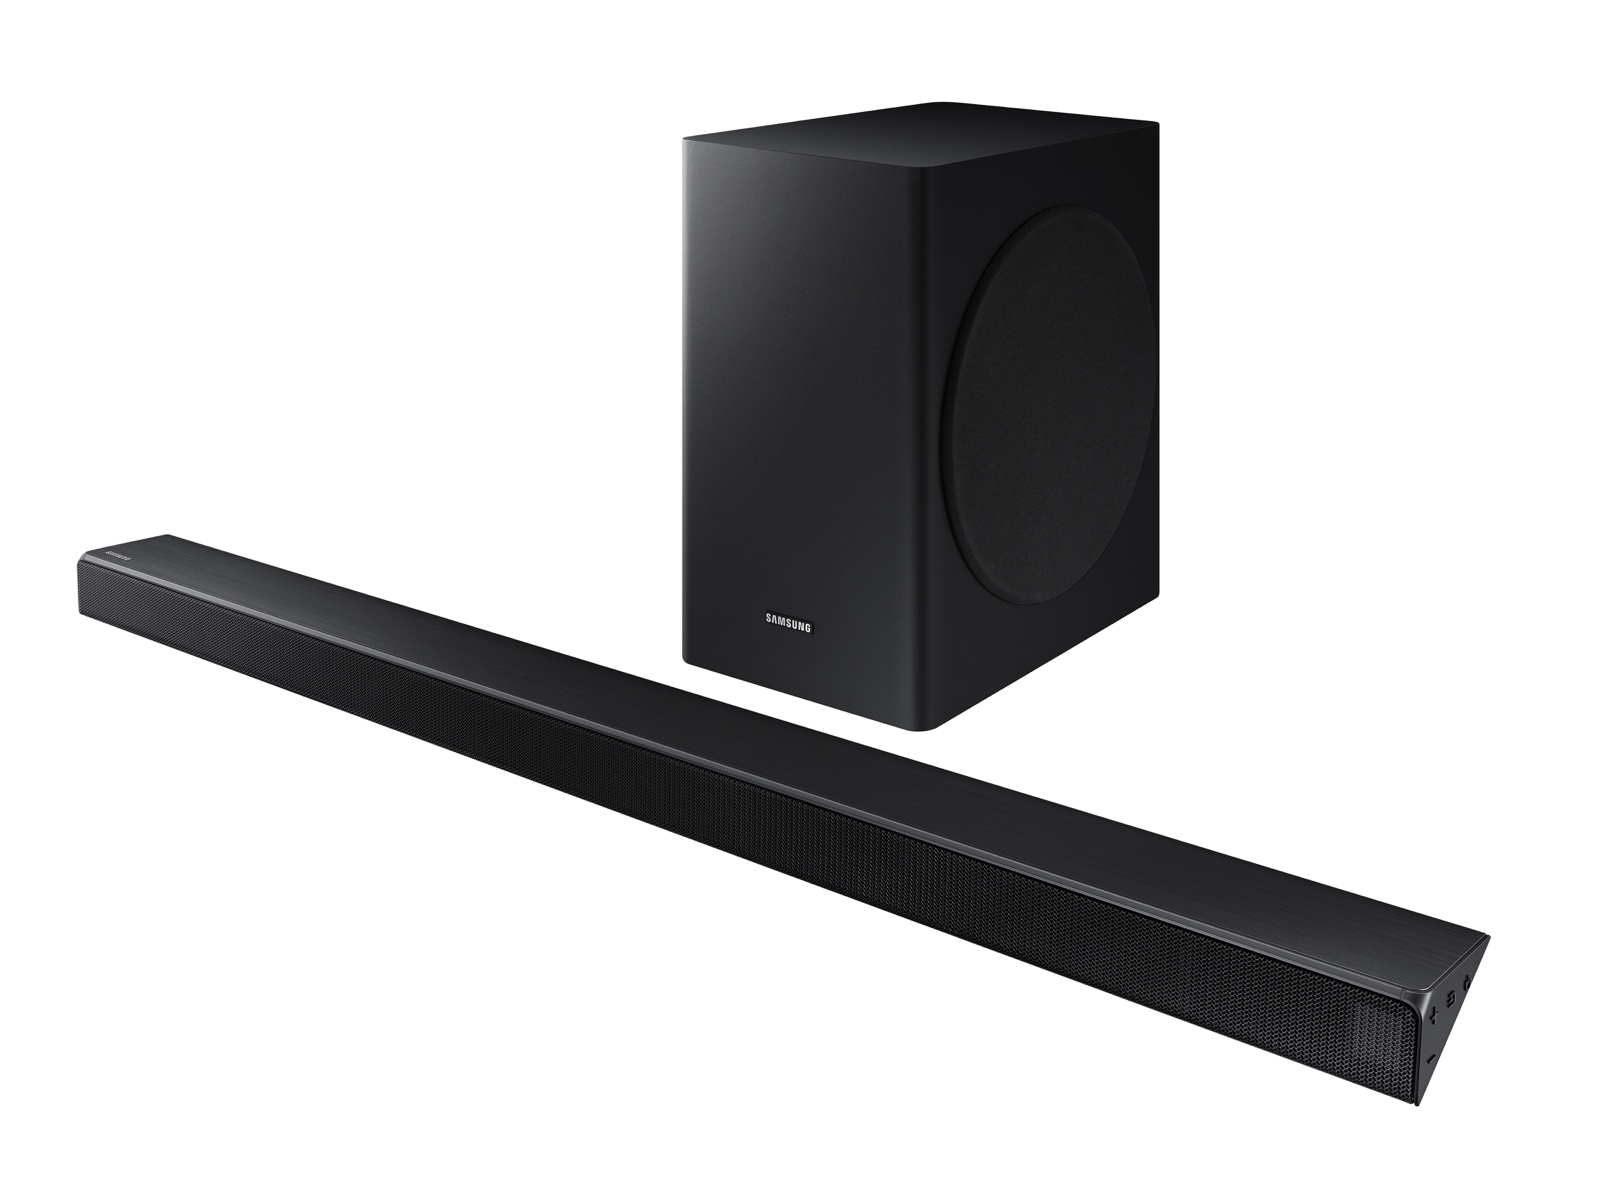 HW-R650 Soundbar Home Theater - HW-R650/ZA | Samsung US